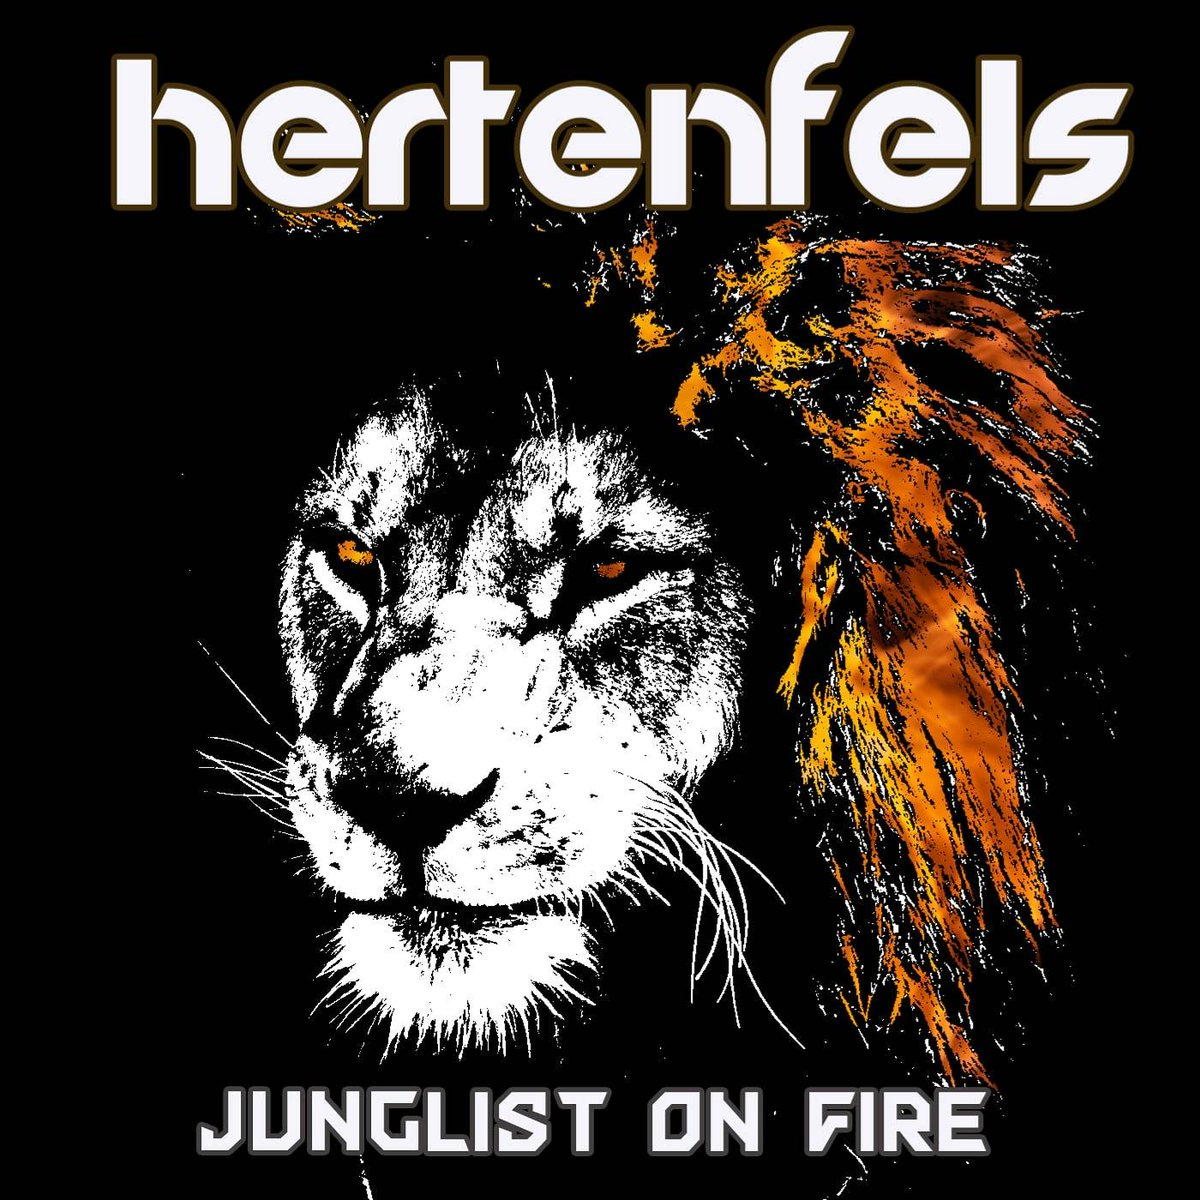 Hertenfels - Junglist On Fire  #drumandbass #junglist #dnb #breakbeat  https://t.co/Xe7YF0QbJp https://t.co/7KqHvI9vwN